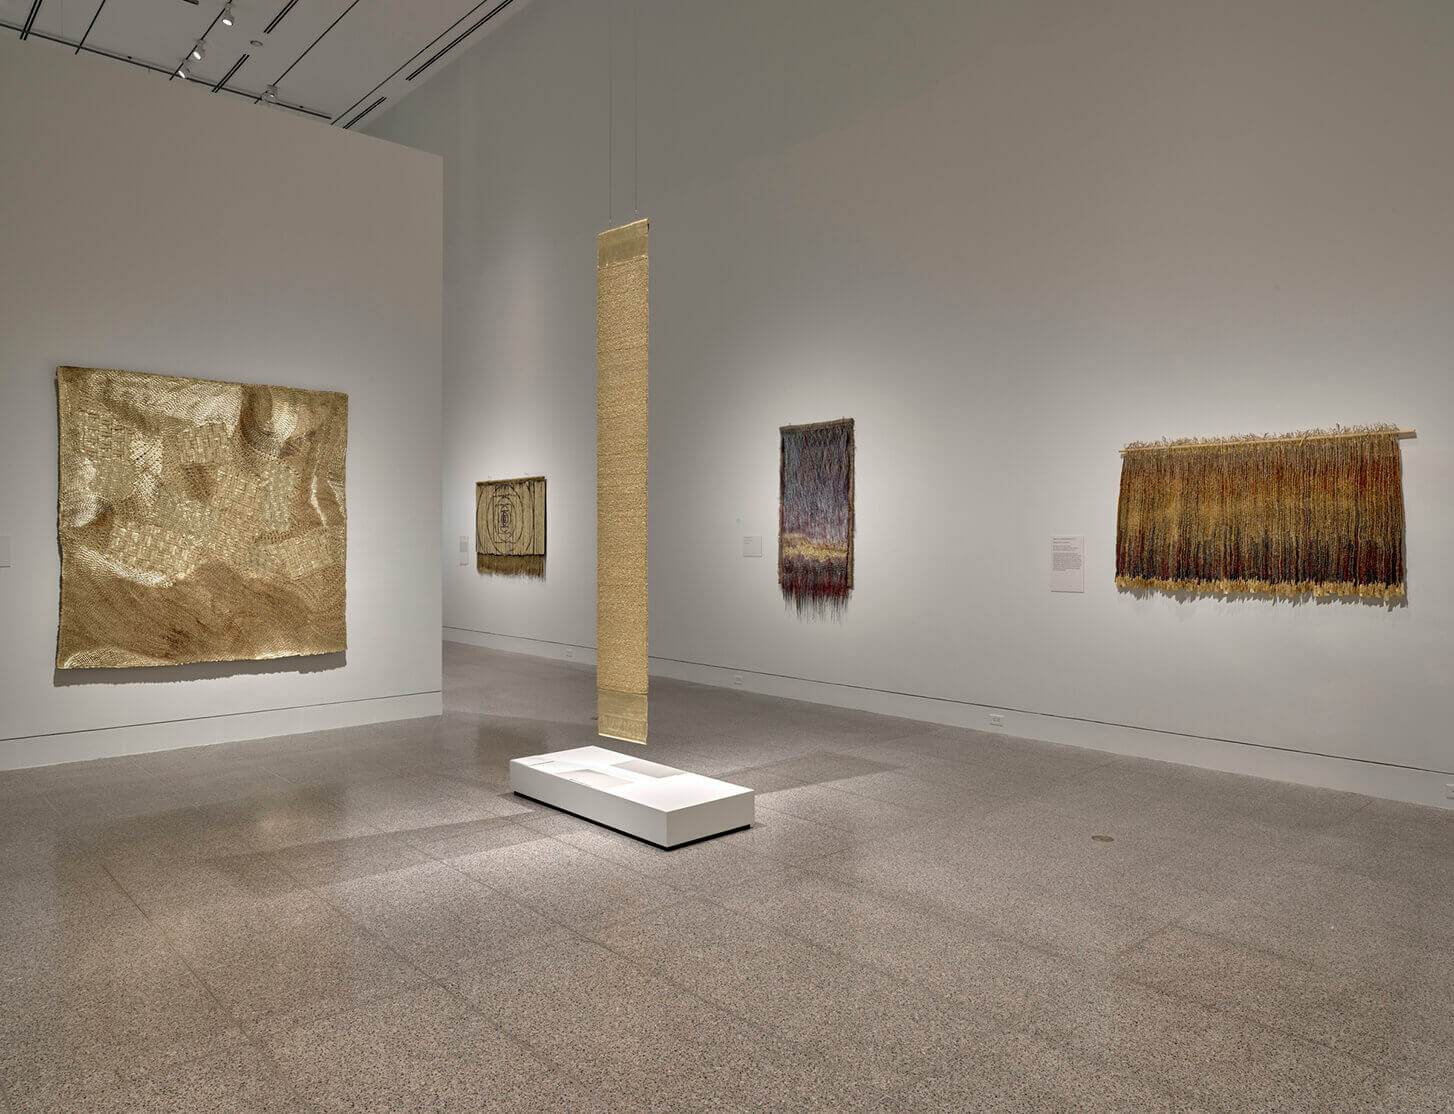 Major touring exhibition of work by Olga de Amaral opens at The Museum of Fine Arts, Houston